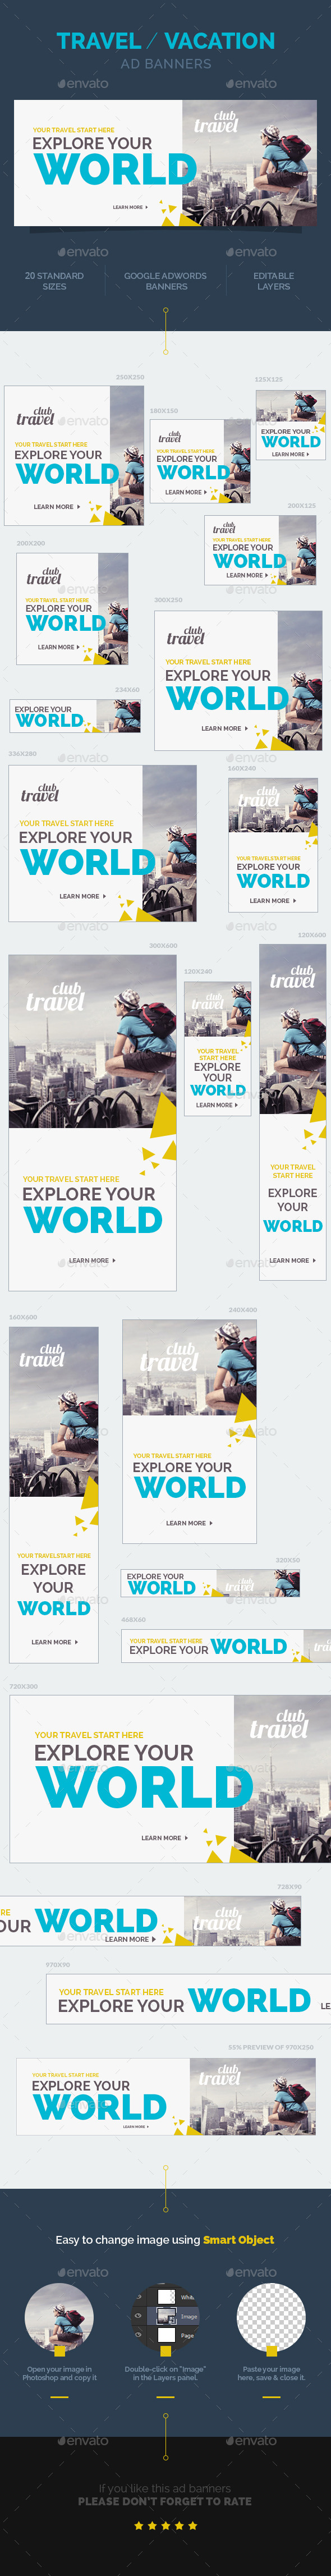 GraphicRiver Travel Vacation Ad Banners 9943122